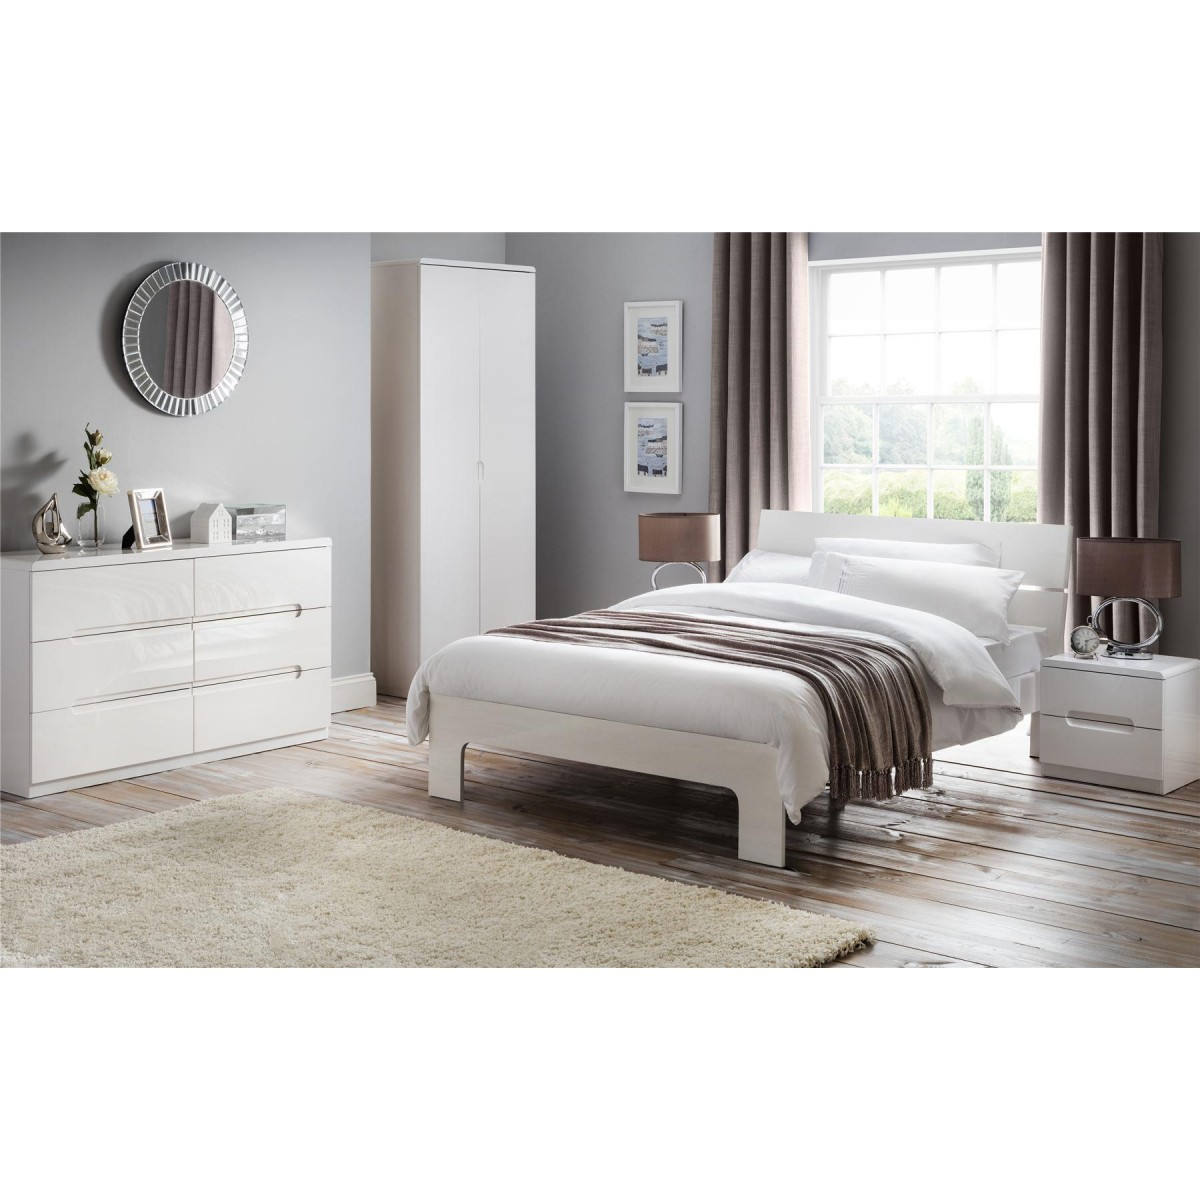 810 Bedroom Furniture Next Day Delivery New HD